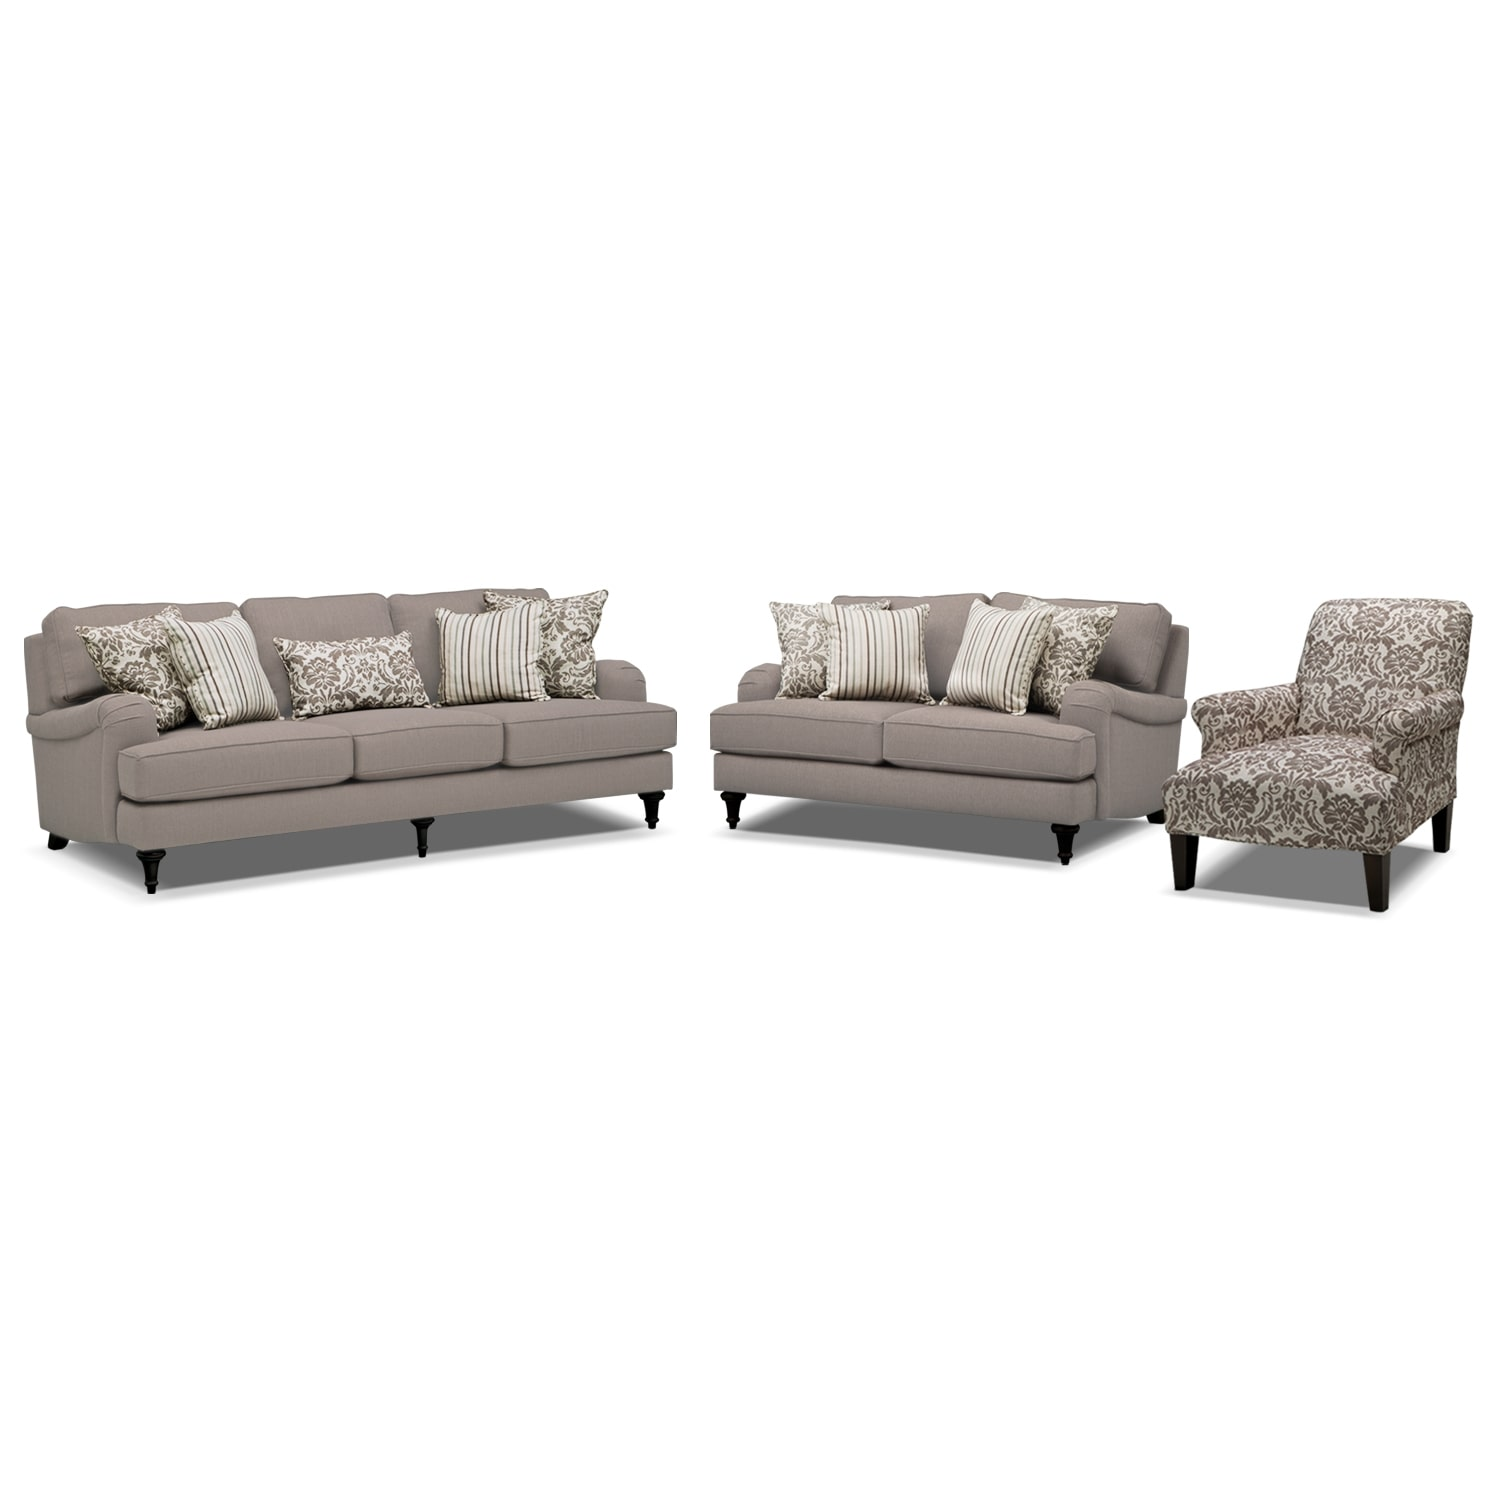 Living Room Furniture - Candice Sofa, Loveseat and Accent Chair - Gray